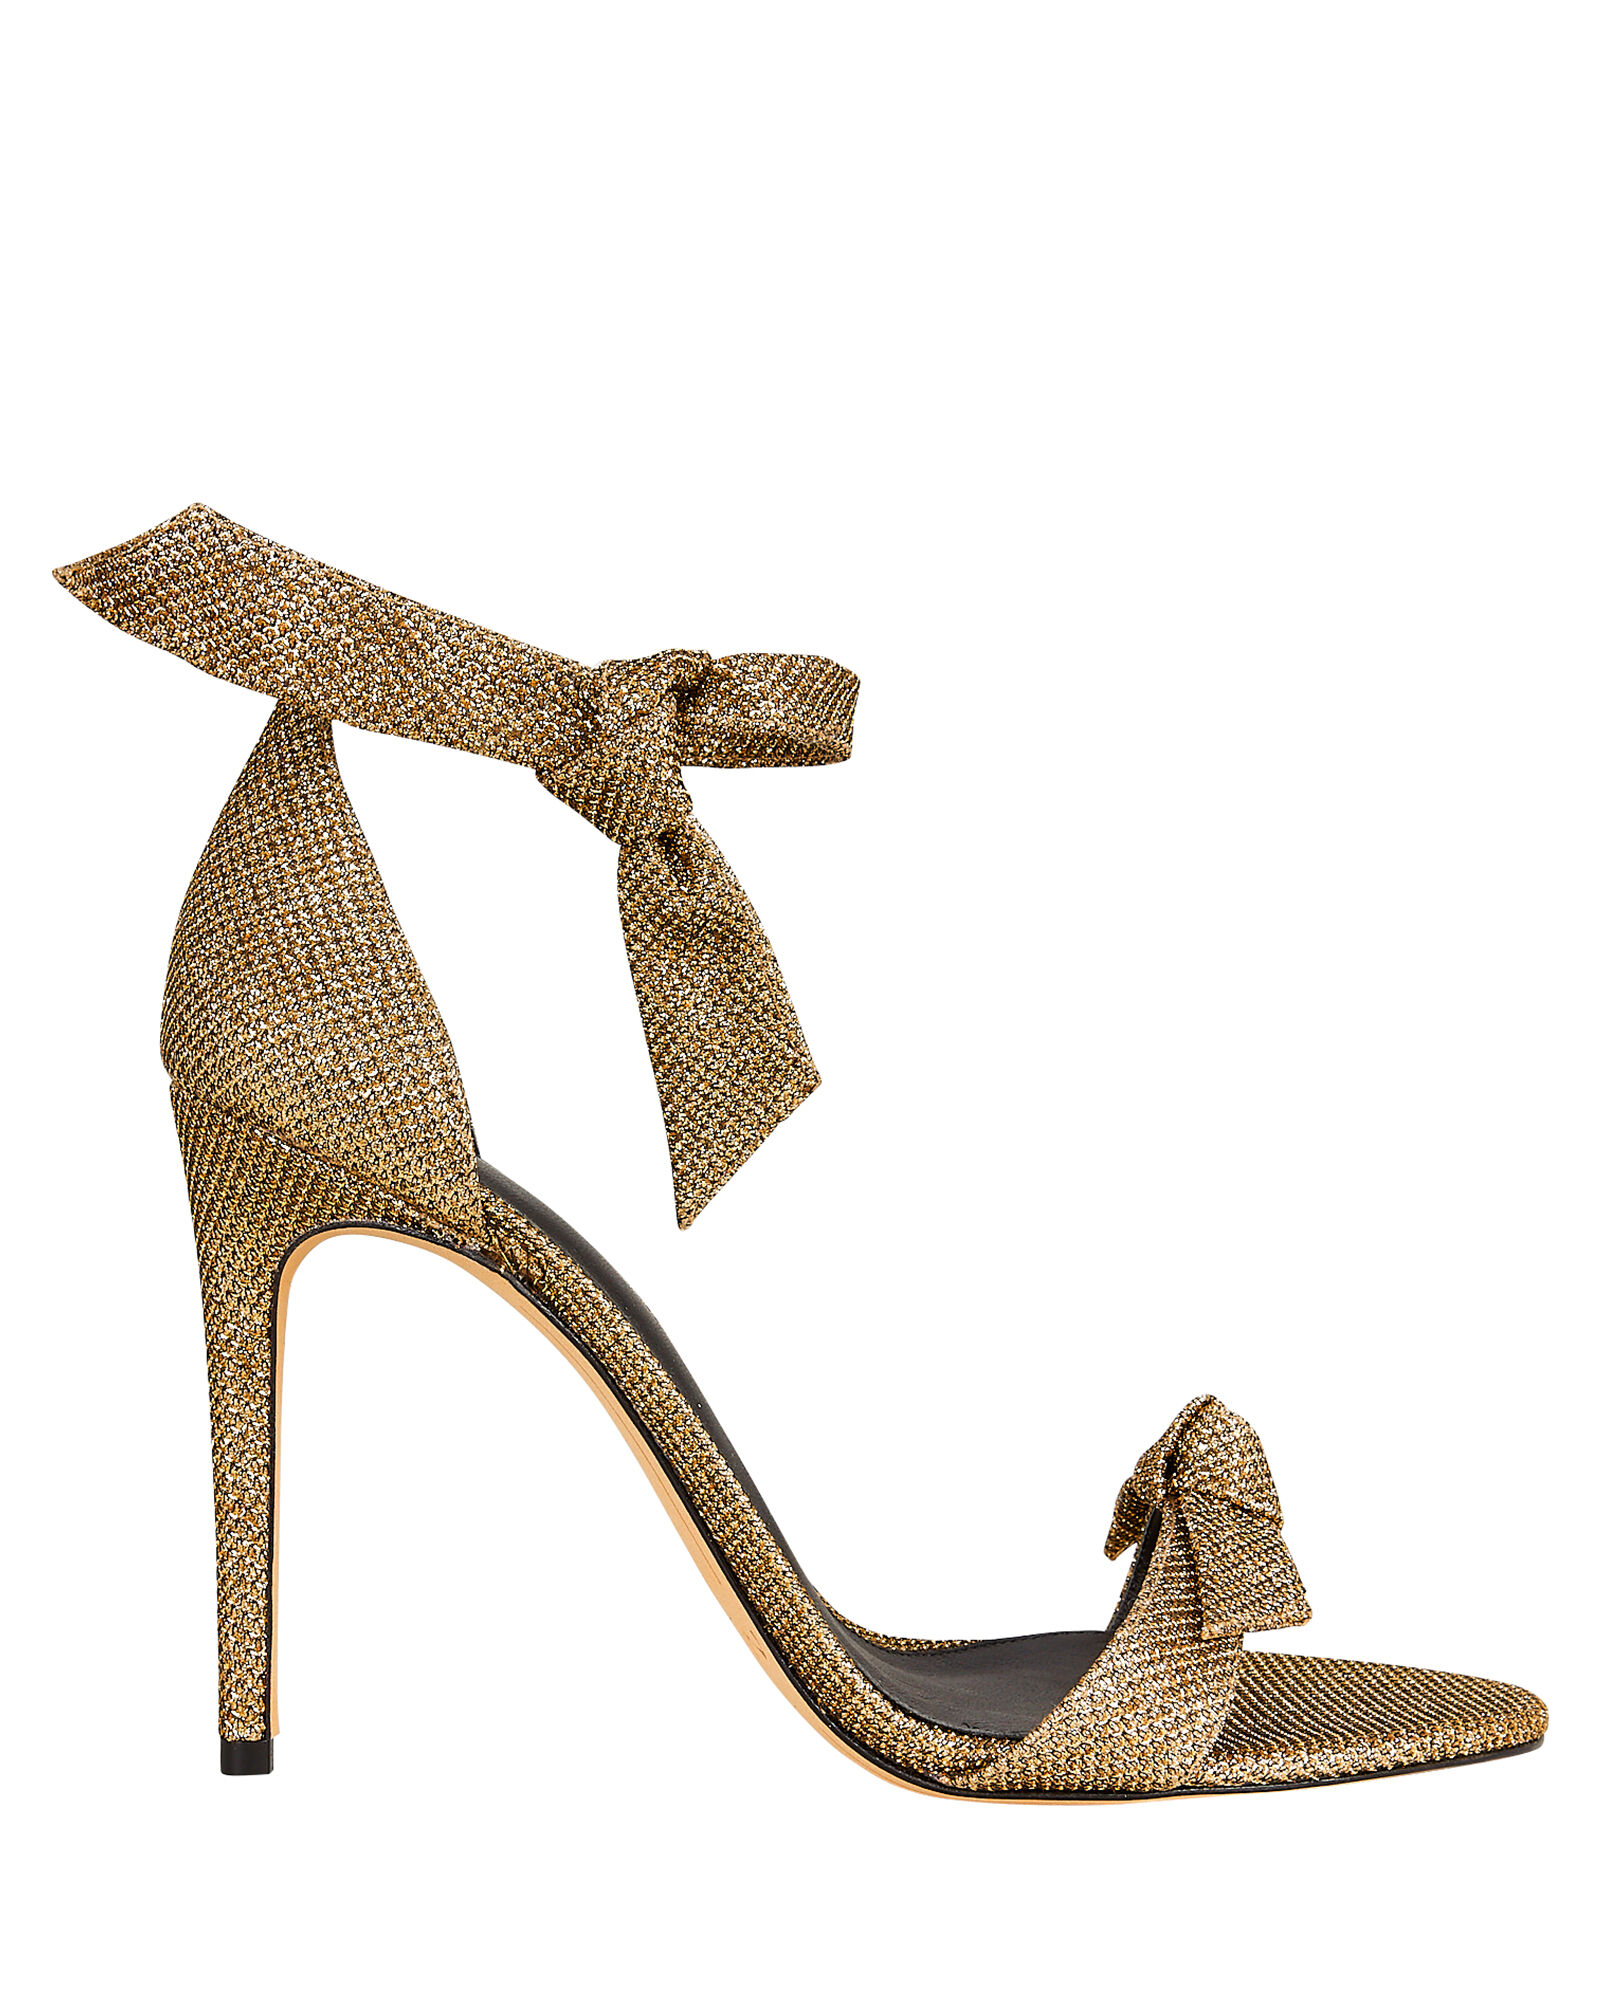 Clarita 100 Lamé Sandals, GOLD, hi-res